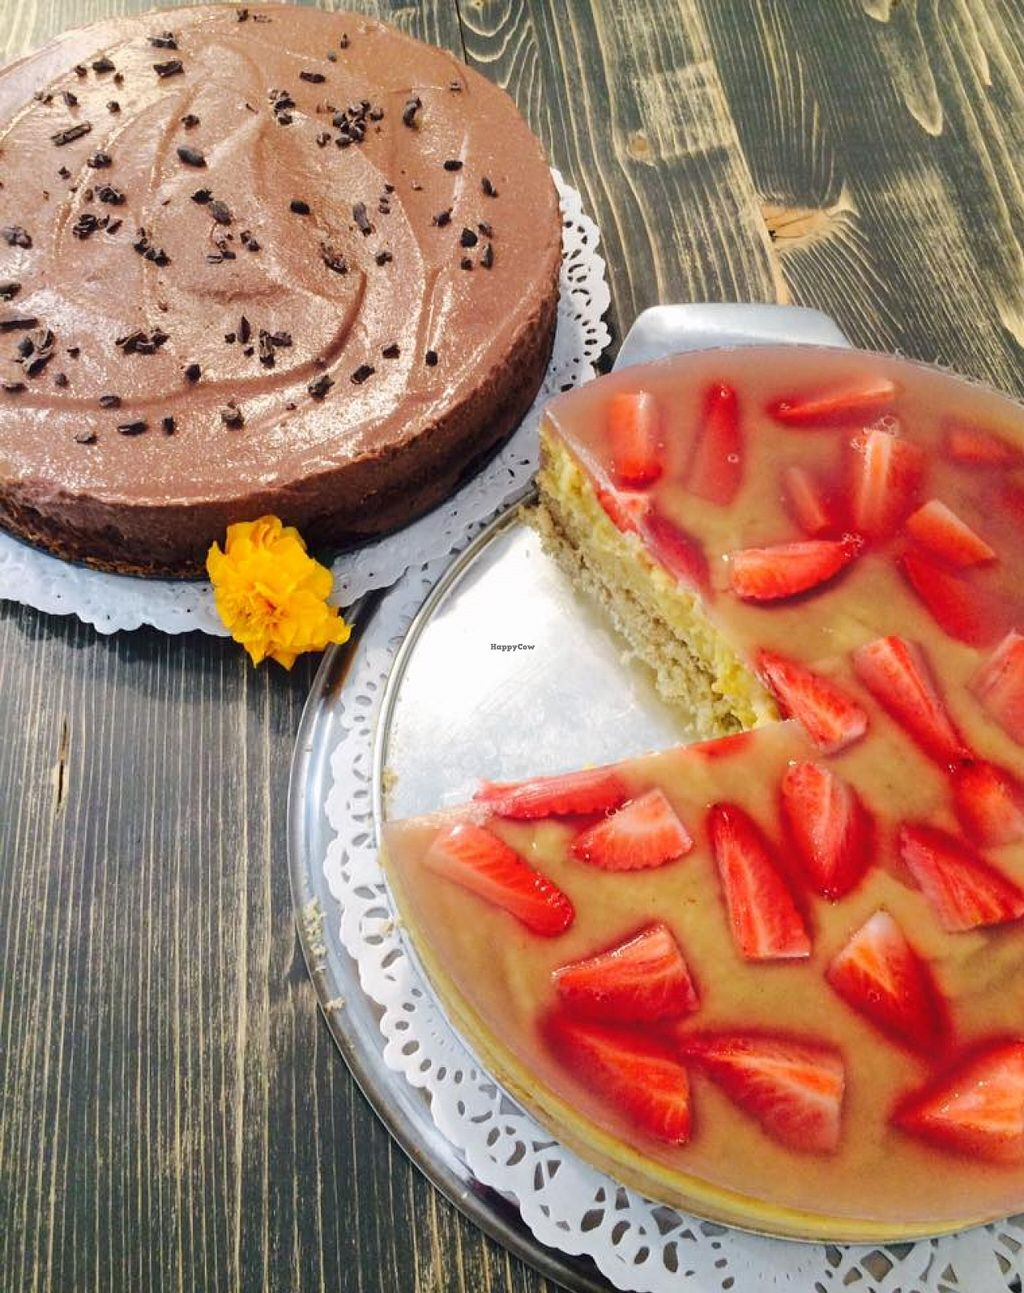 """Photo of MoMo Veg Cafe   by <a href=""""/members/profile/EliJane"""">EliJane</a> <br/>chocolate and vanilla cake- gluten and sugar free <br/> April 10, 2016  - <a href='/contact/abuse/image/72083/143717'>Report</a>"""